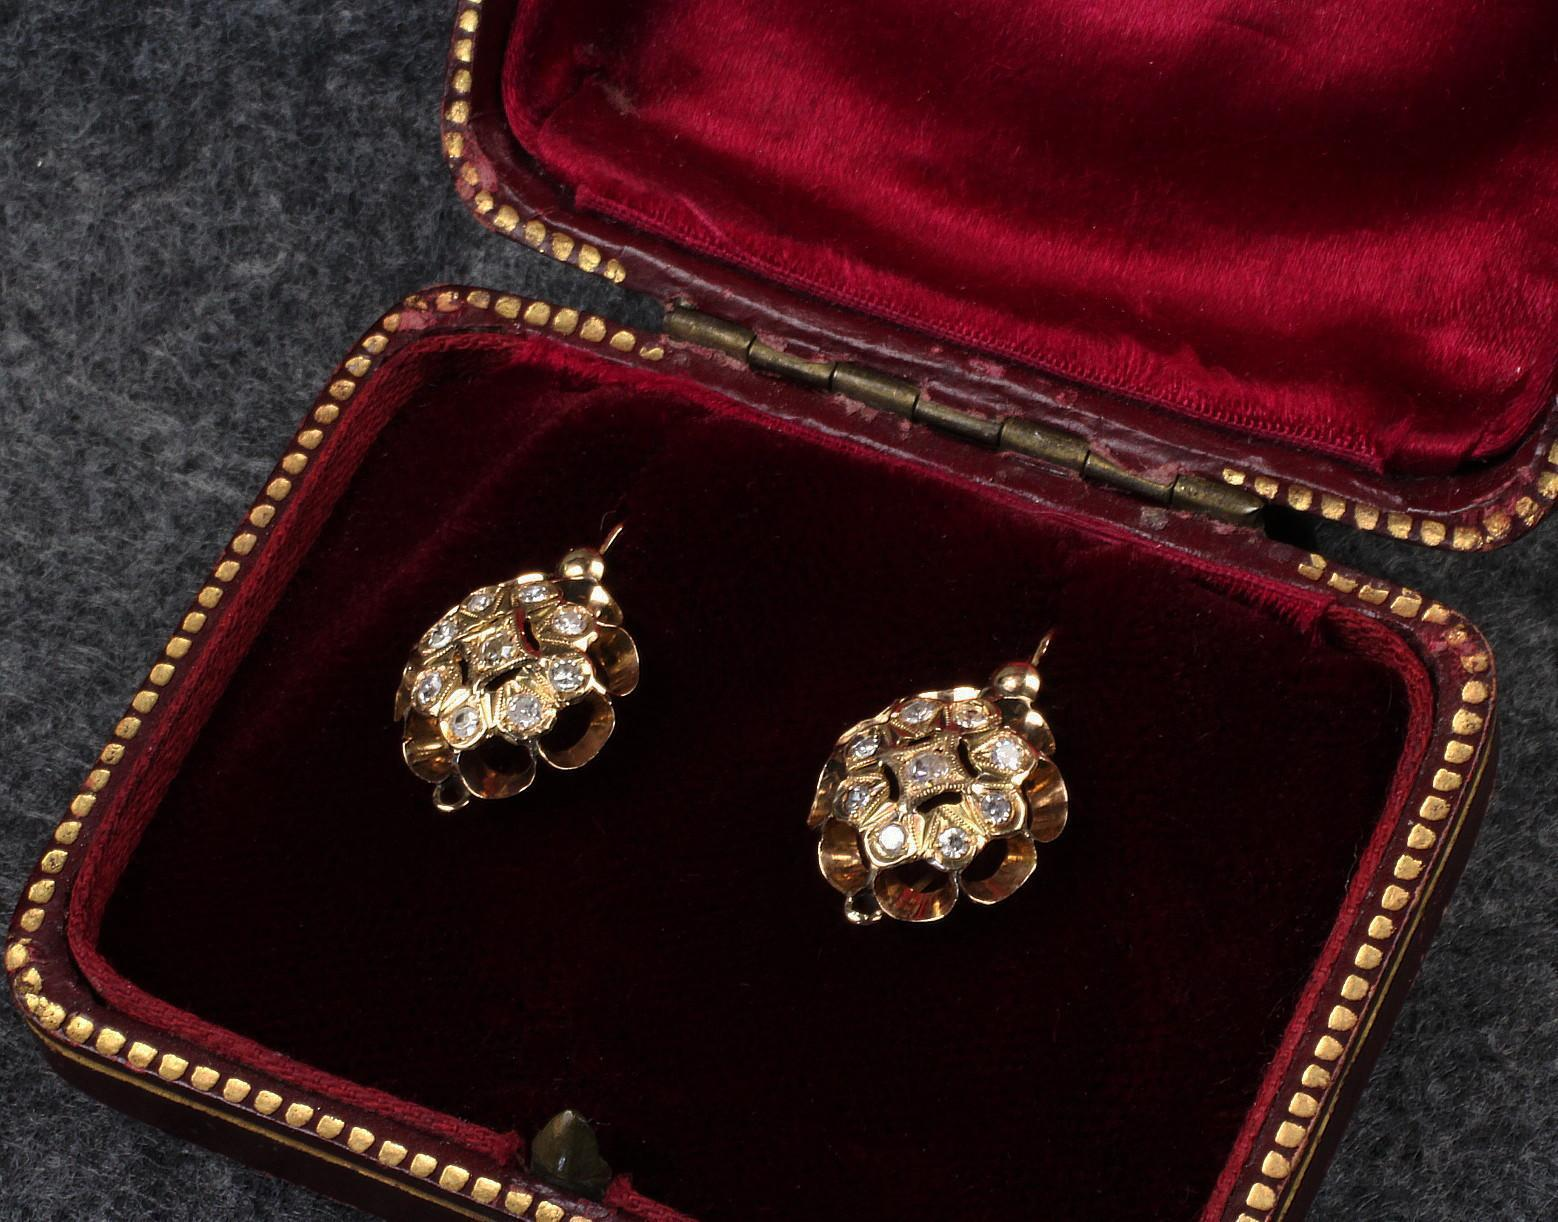 Antique 18K Yellow Gold Earrings with 18 Euro Cut Diamonds - 0.40 Ct. TW